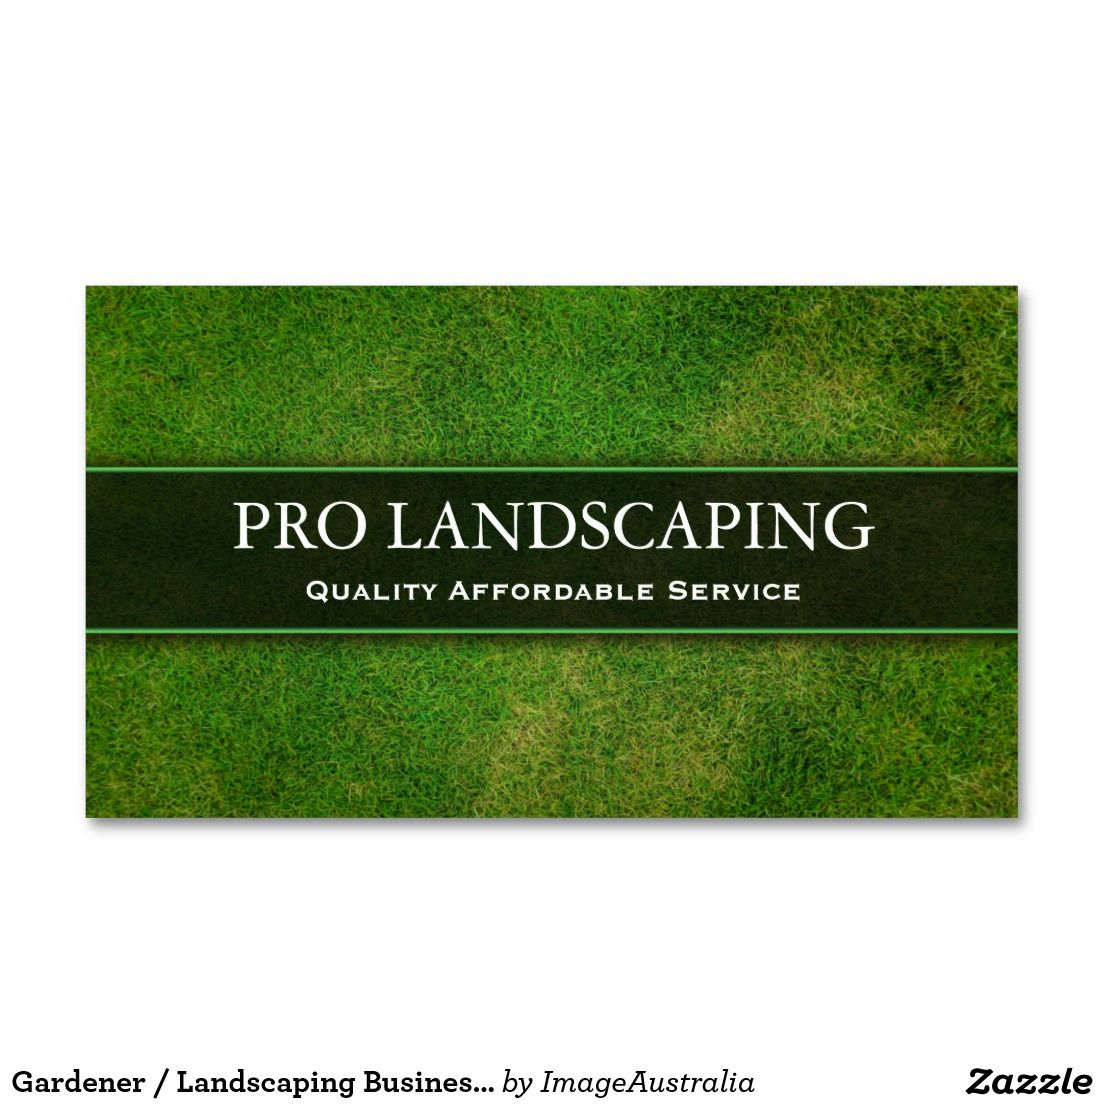 Gardener / Landscaping Business Card | Landscaping, Business and Cards